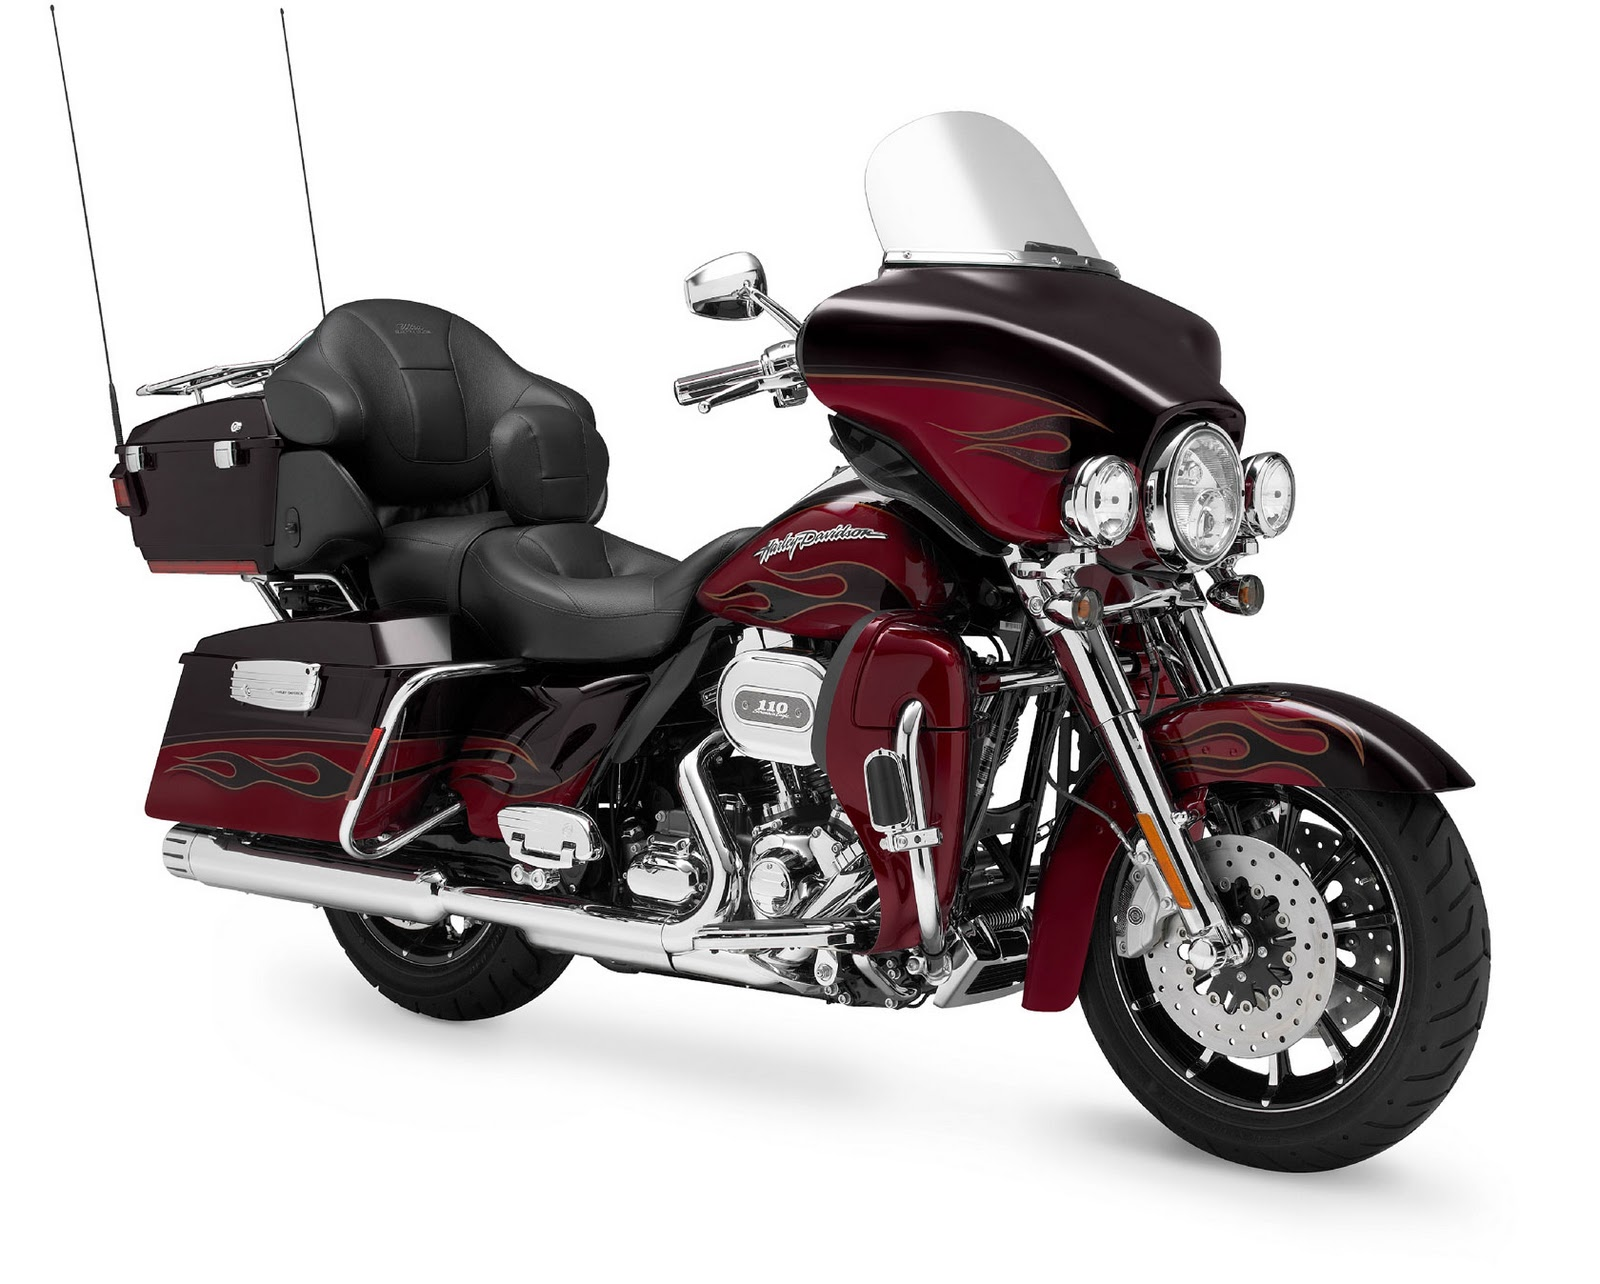 2011 Harley-Davidson Ultra Classic Electra Glide